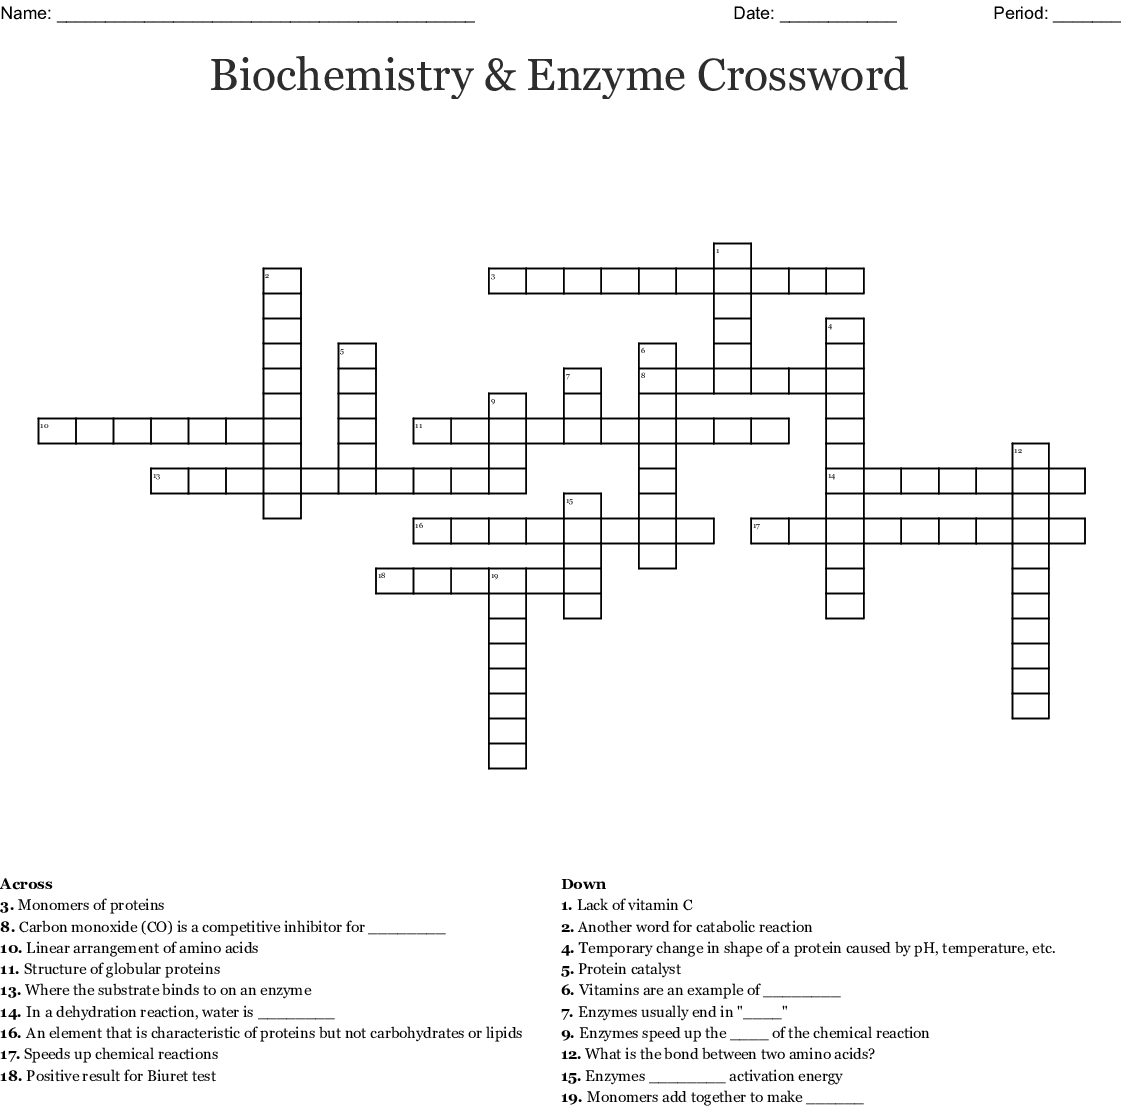 Chemical Equilibrium and Chemical Kinetics Crossword ...